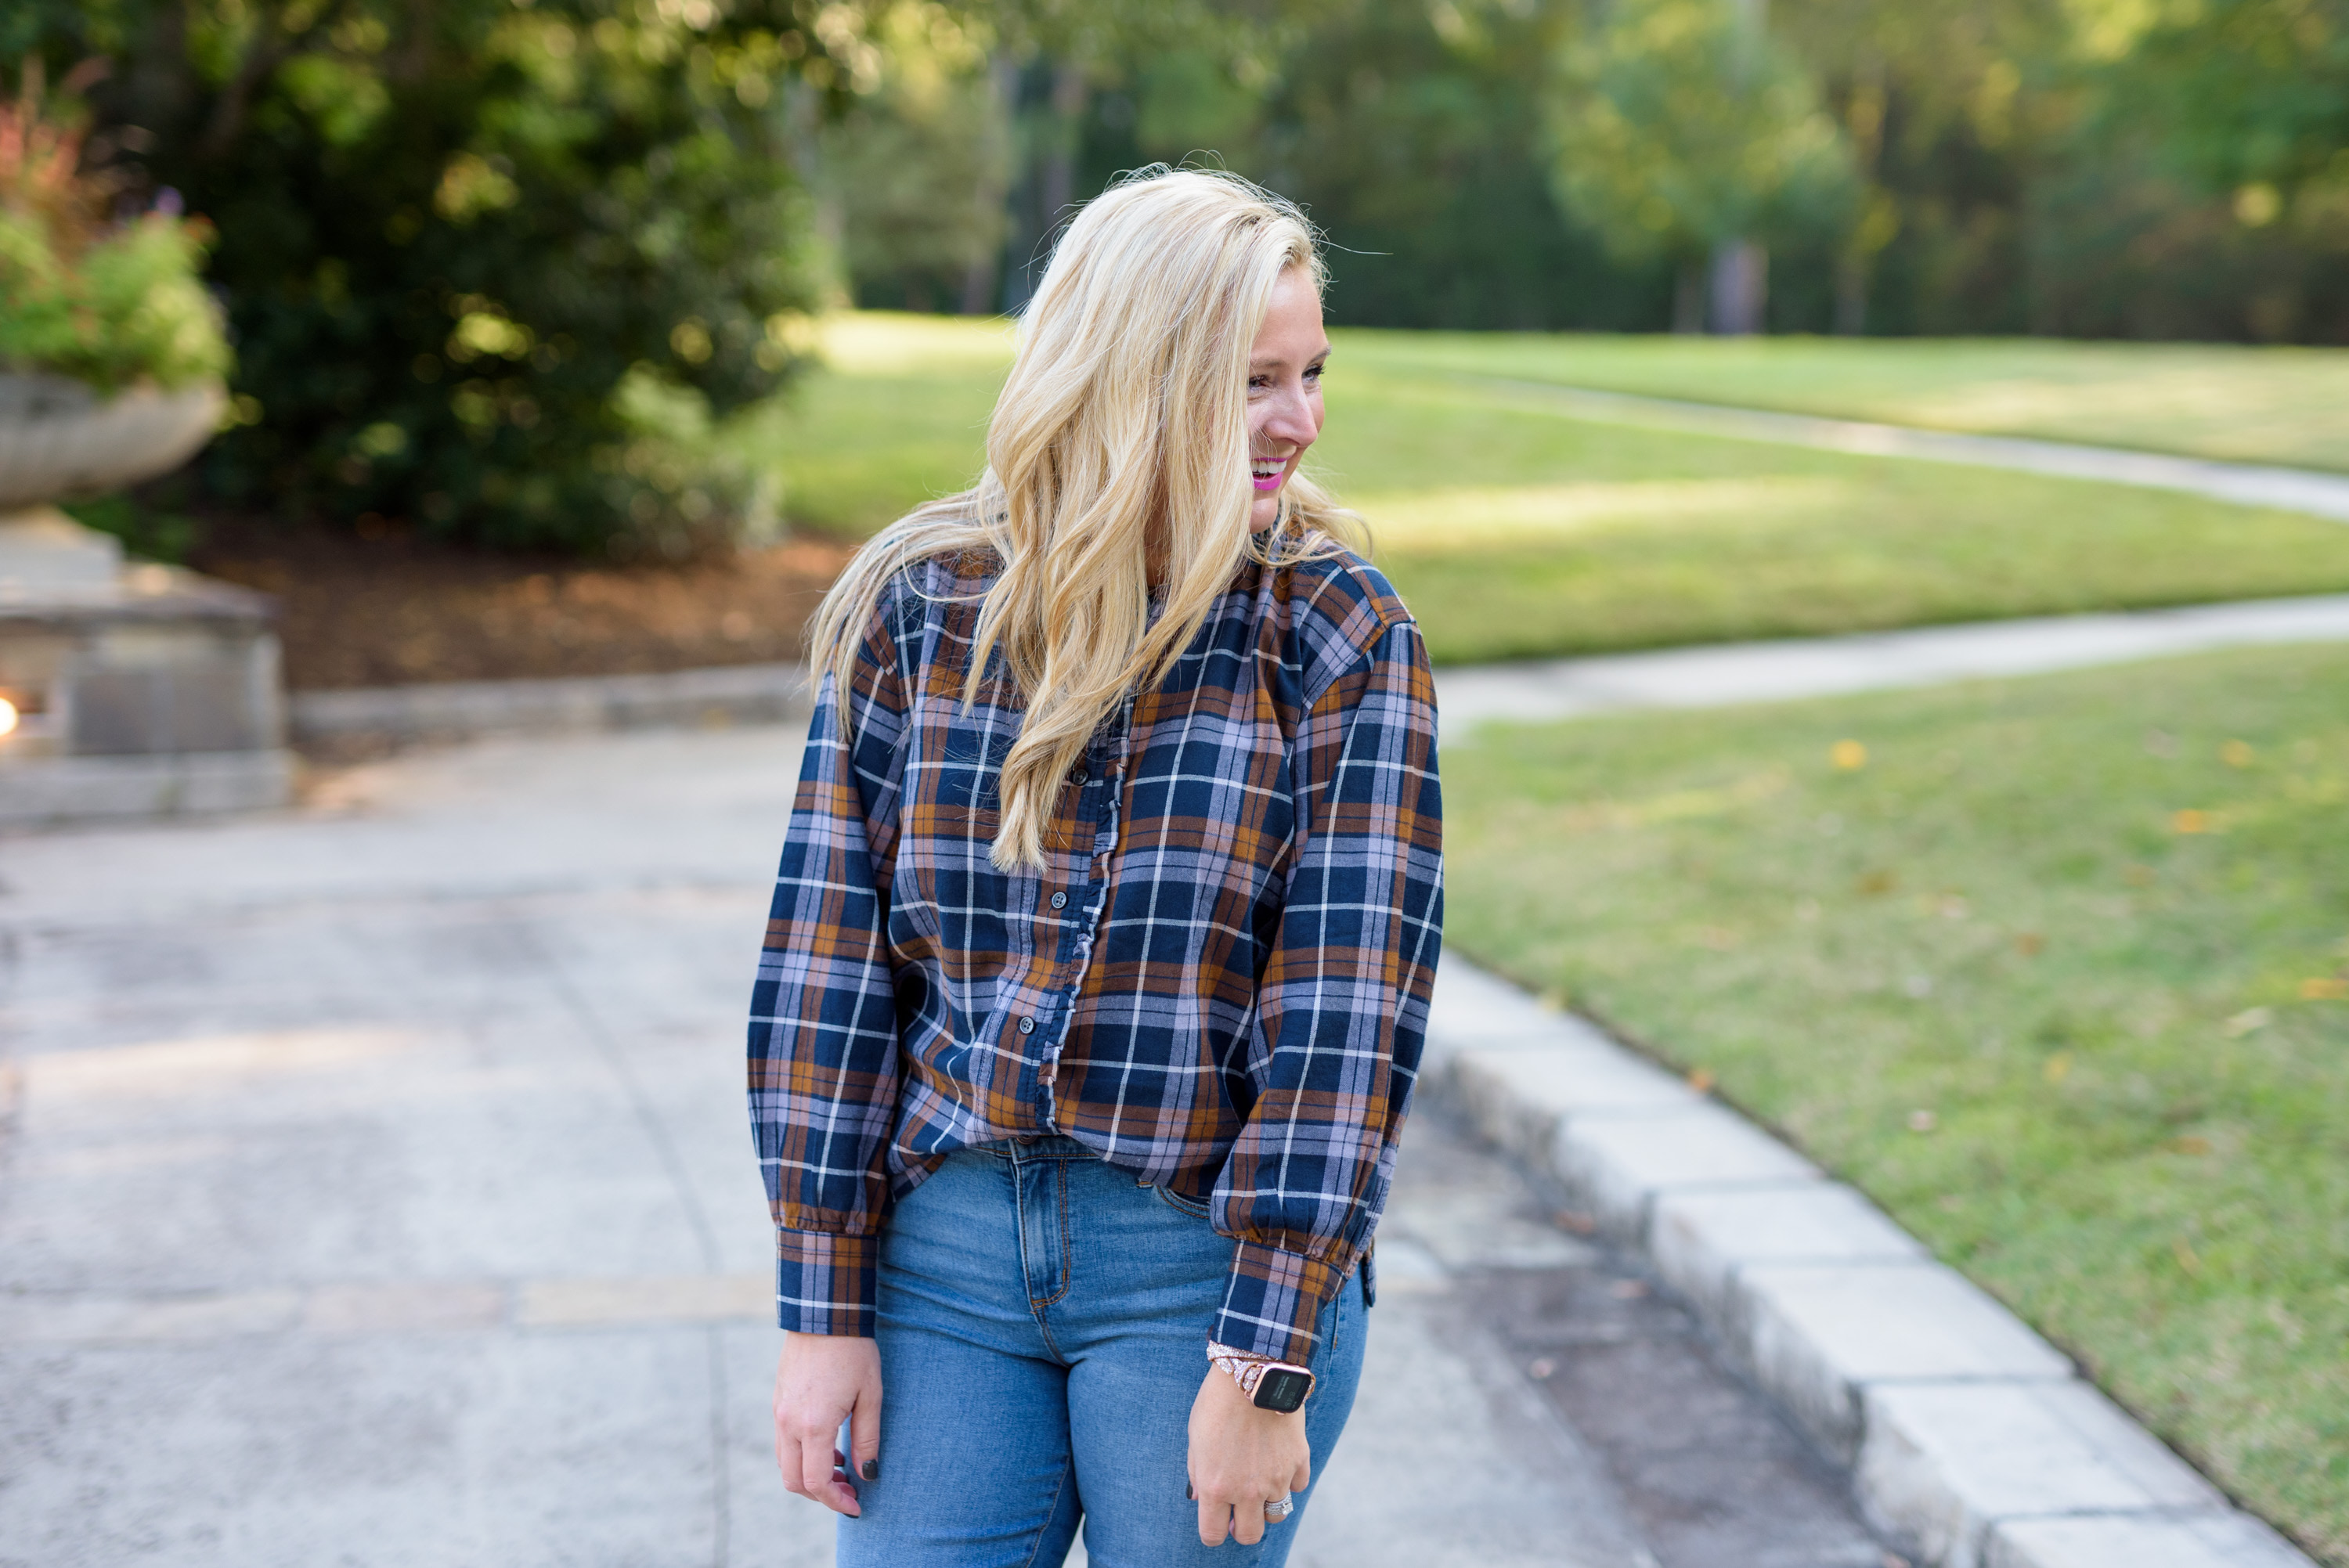 Fall clothing by popular Houston fashion blog, Fancy Ashley: image of a woman wearing a Walmart Free Assembly Women's Micro Ruffled Top, Walmart Sofia Jeans Rosa Curvy Ripped Hem High Waist Ankle Jean, and Walmart Scoop Women's Willow Western Booties.